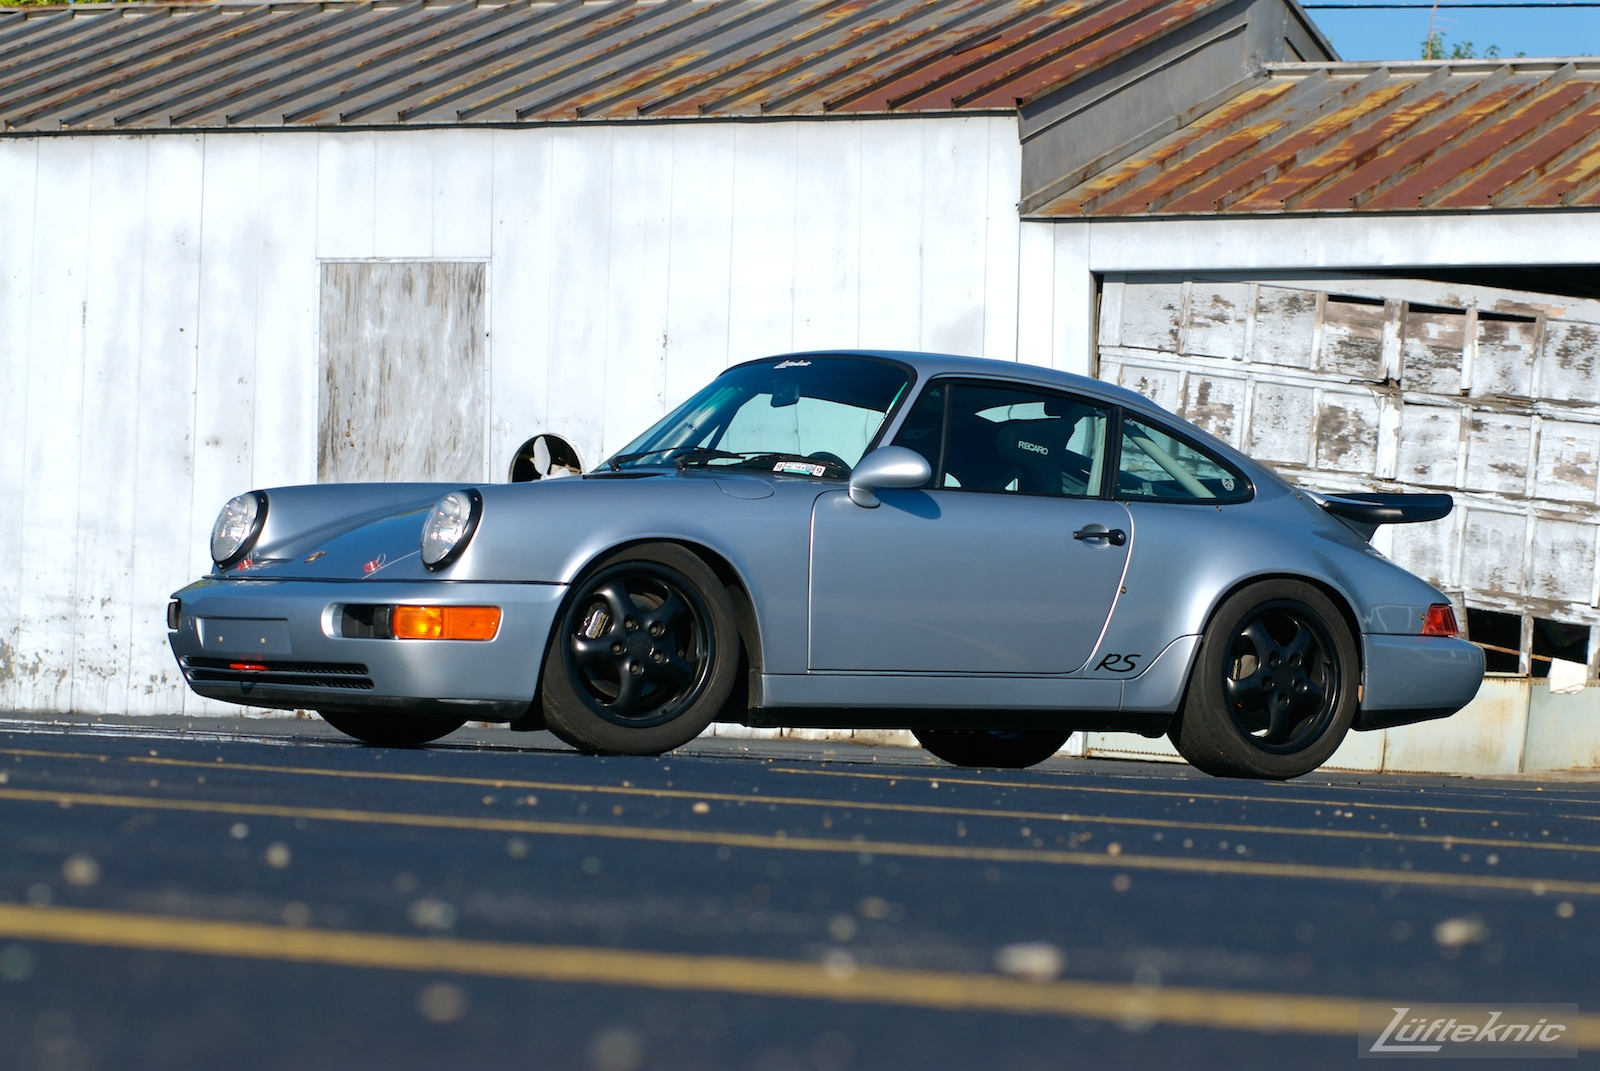 The 964 RS America shown from the front in a parking lot with a dilapidated garage in the background.